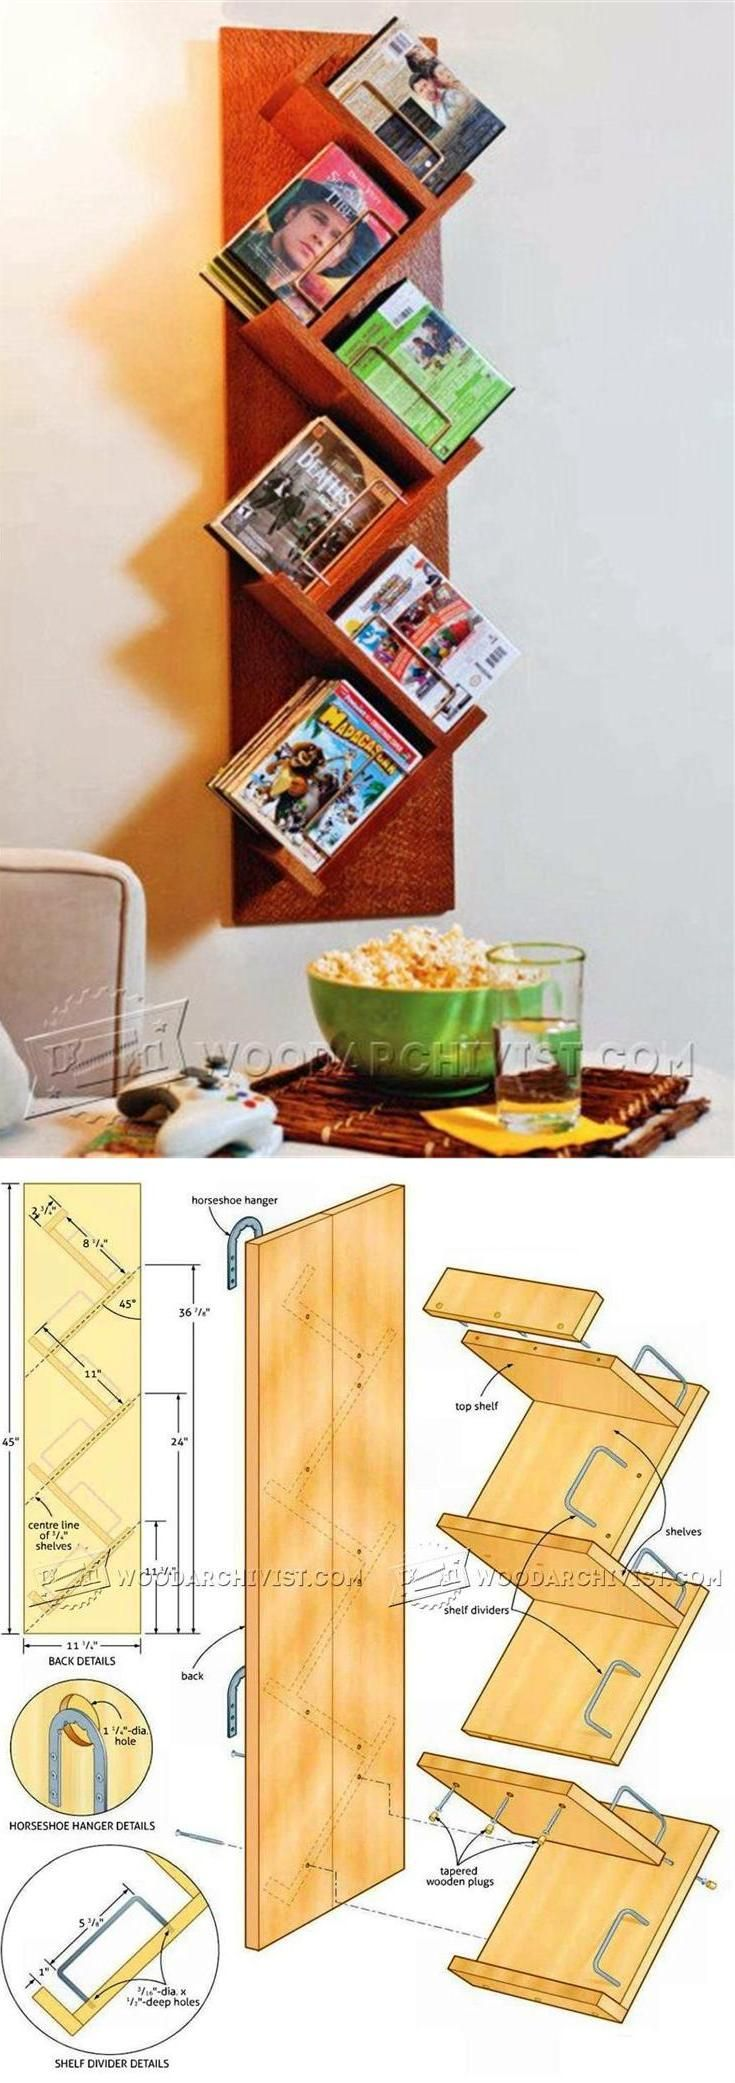 Media Storage Shelf Plans - Furniture Plans and Projects | WoodArchivist.com